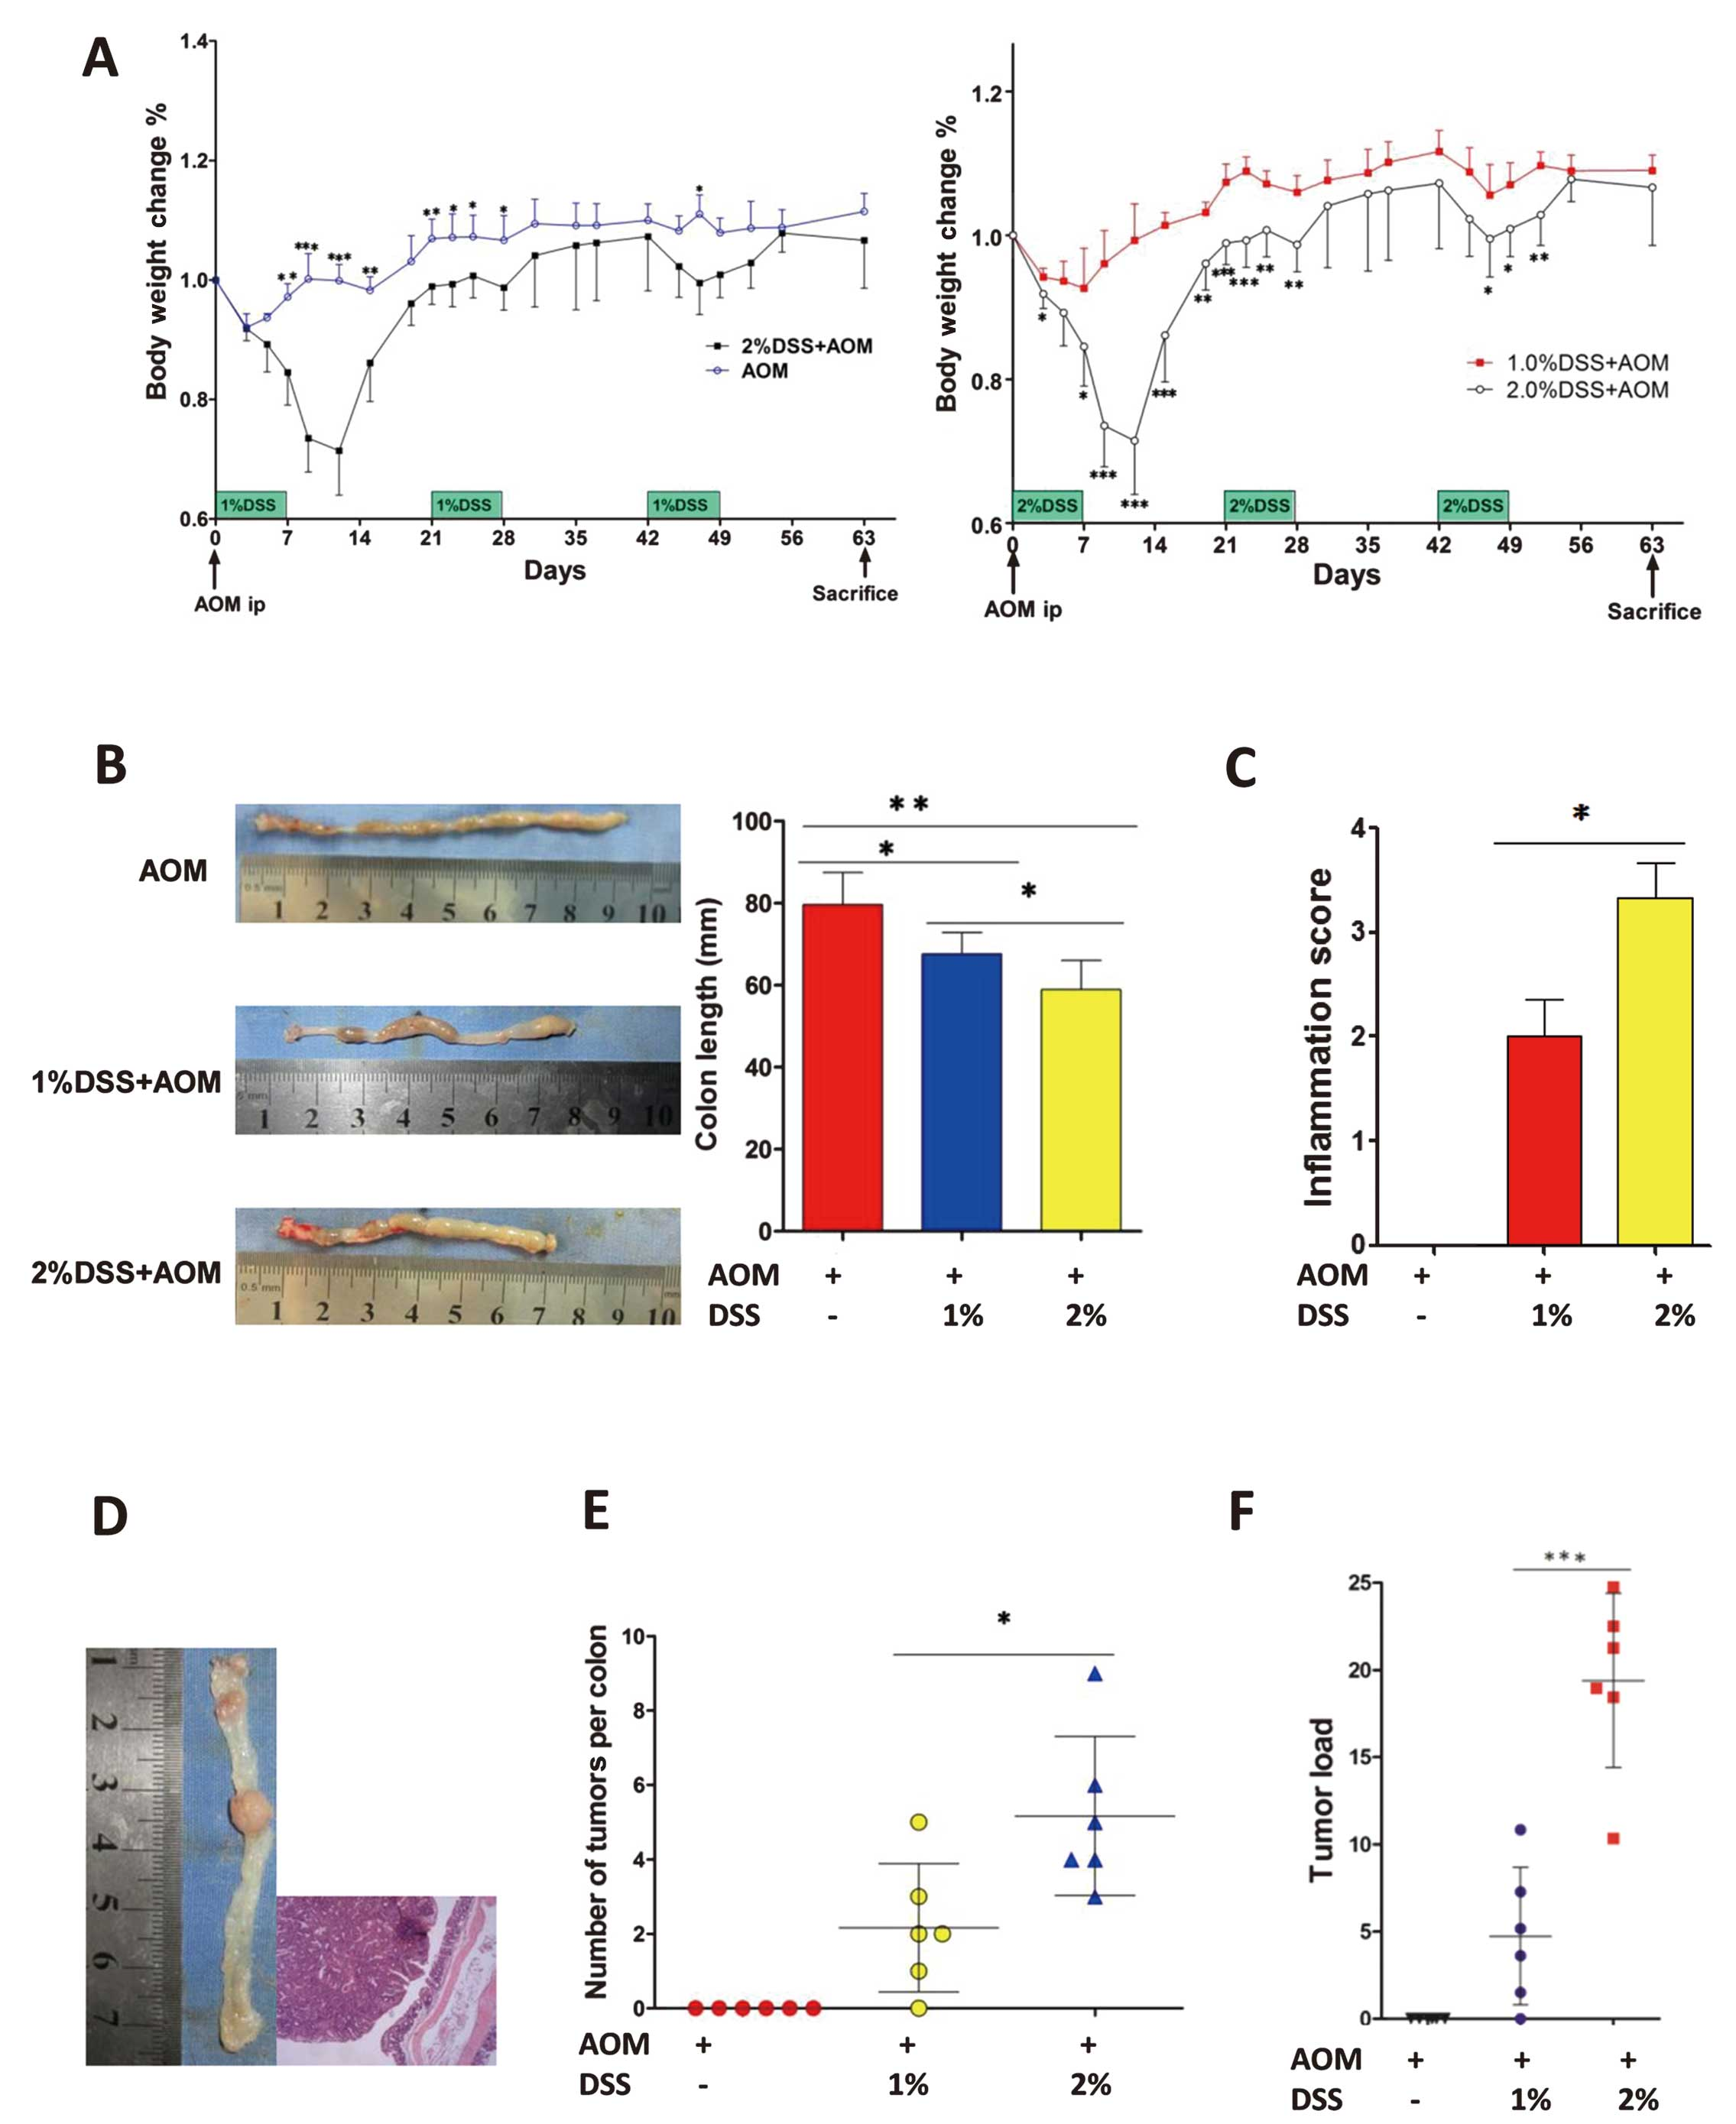 Activation Of The MTORC1 And STAT3 Pathways Promotes The